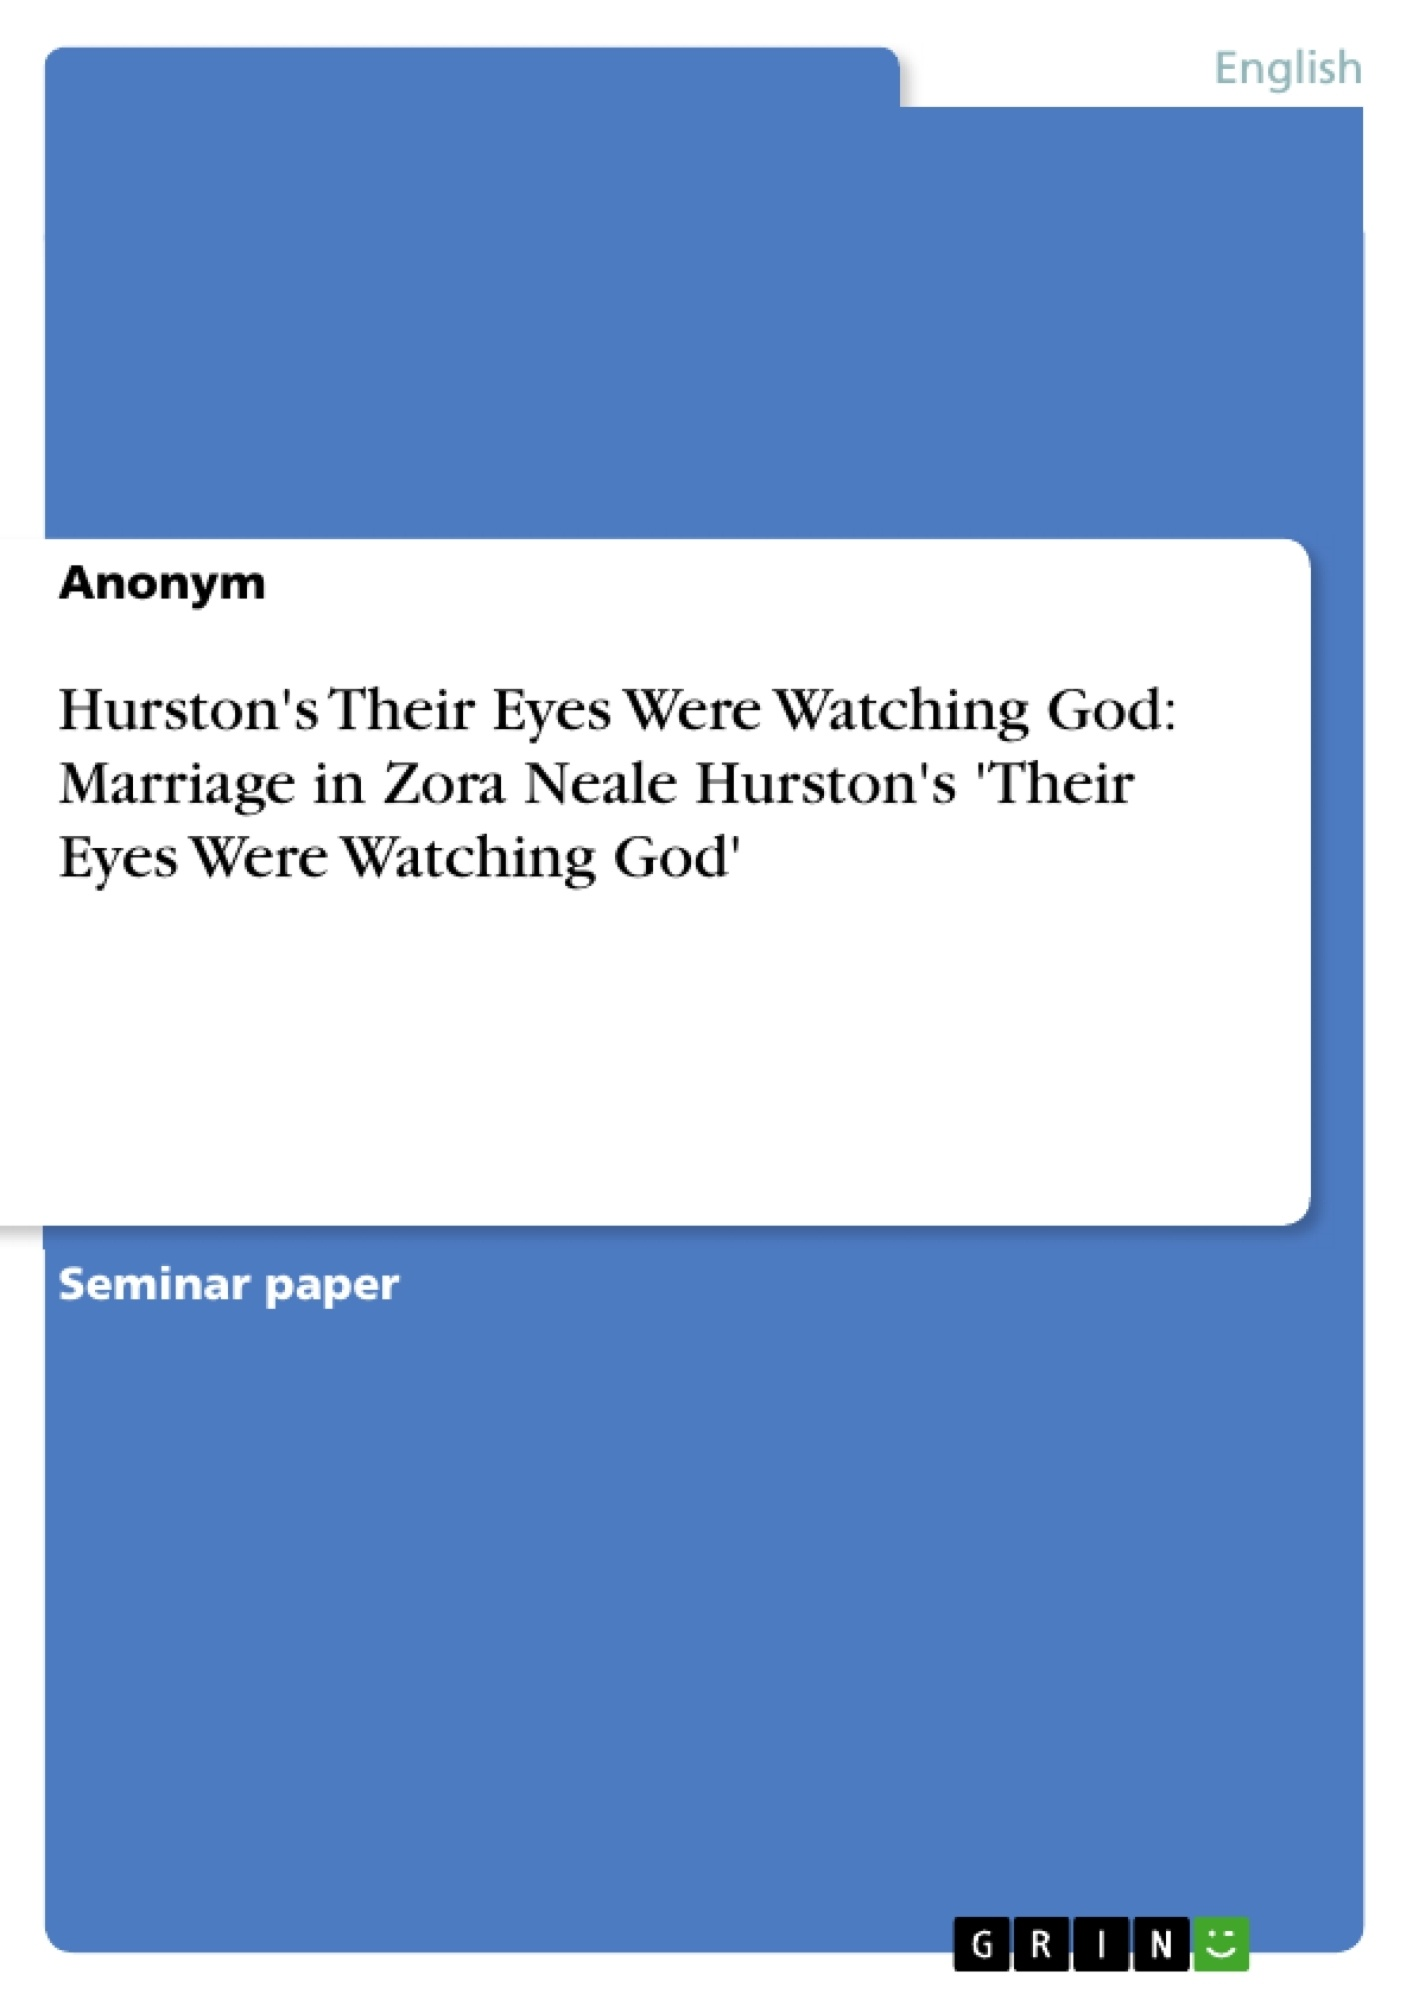 hurston s their eyes were watching god marriage in zora neale upload your own papers earn money and win an iphone 7